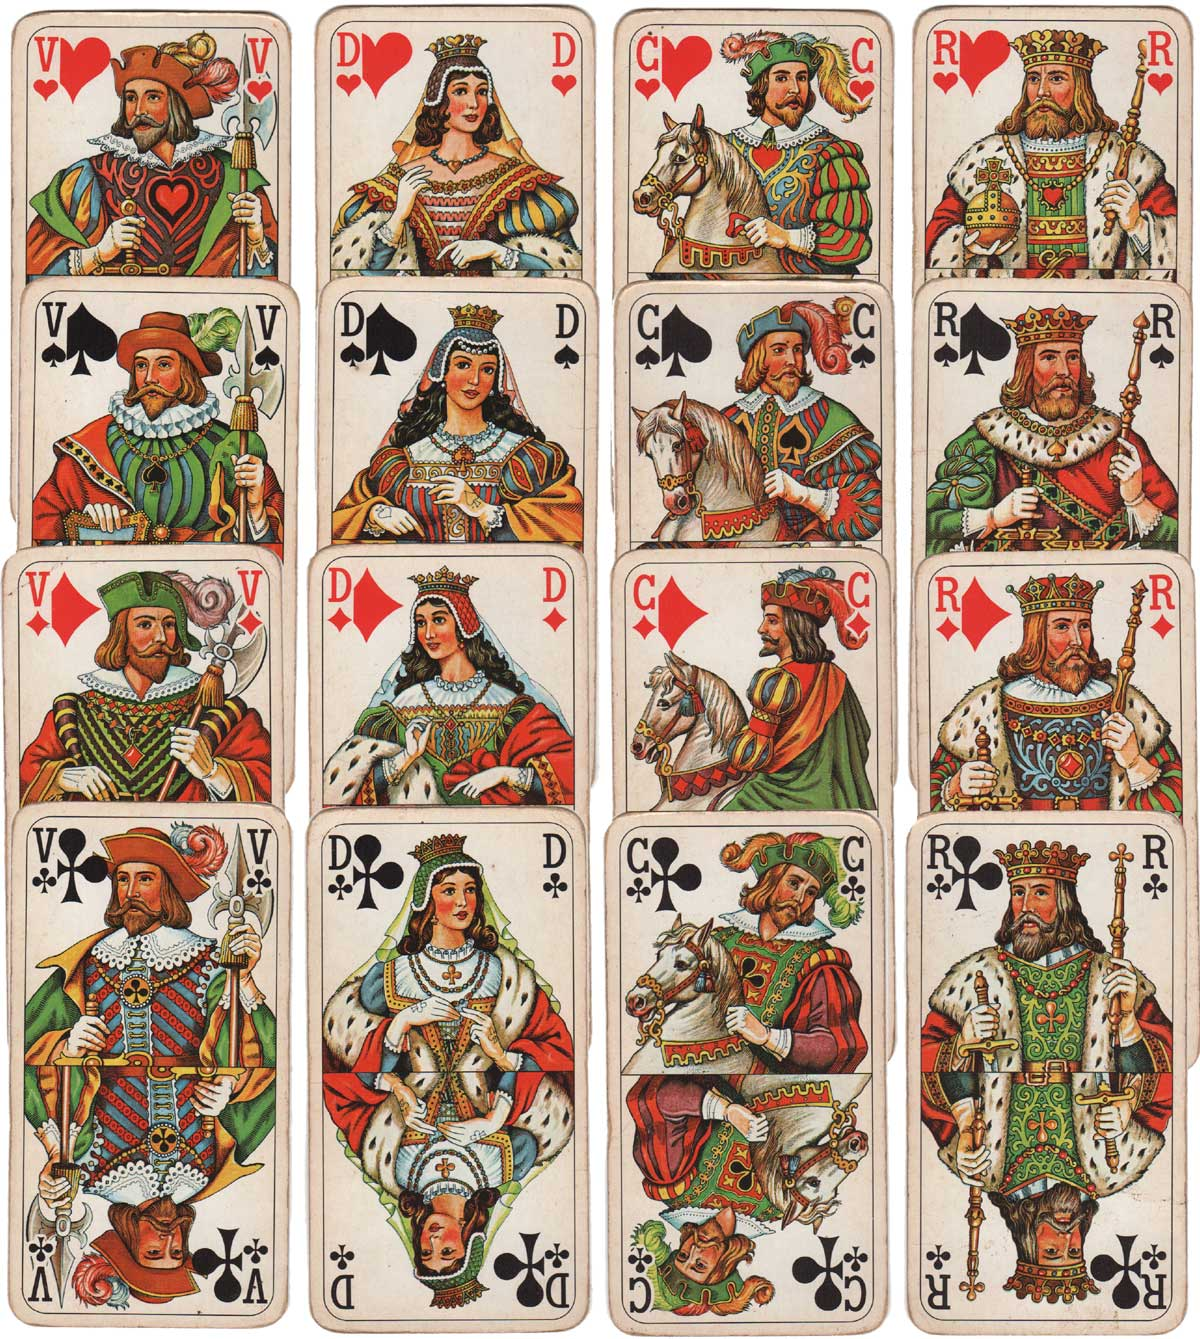 The 16 court cards from Bourgeois Tarot by Piatnik 1987